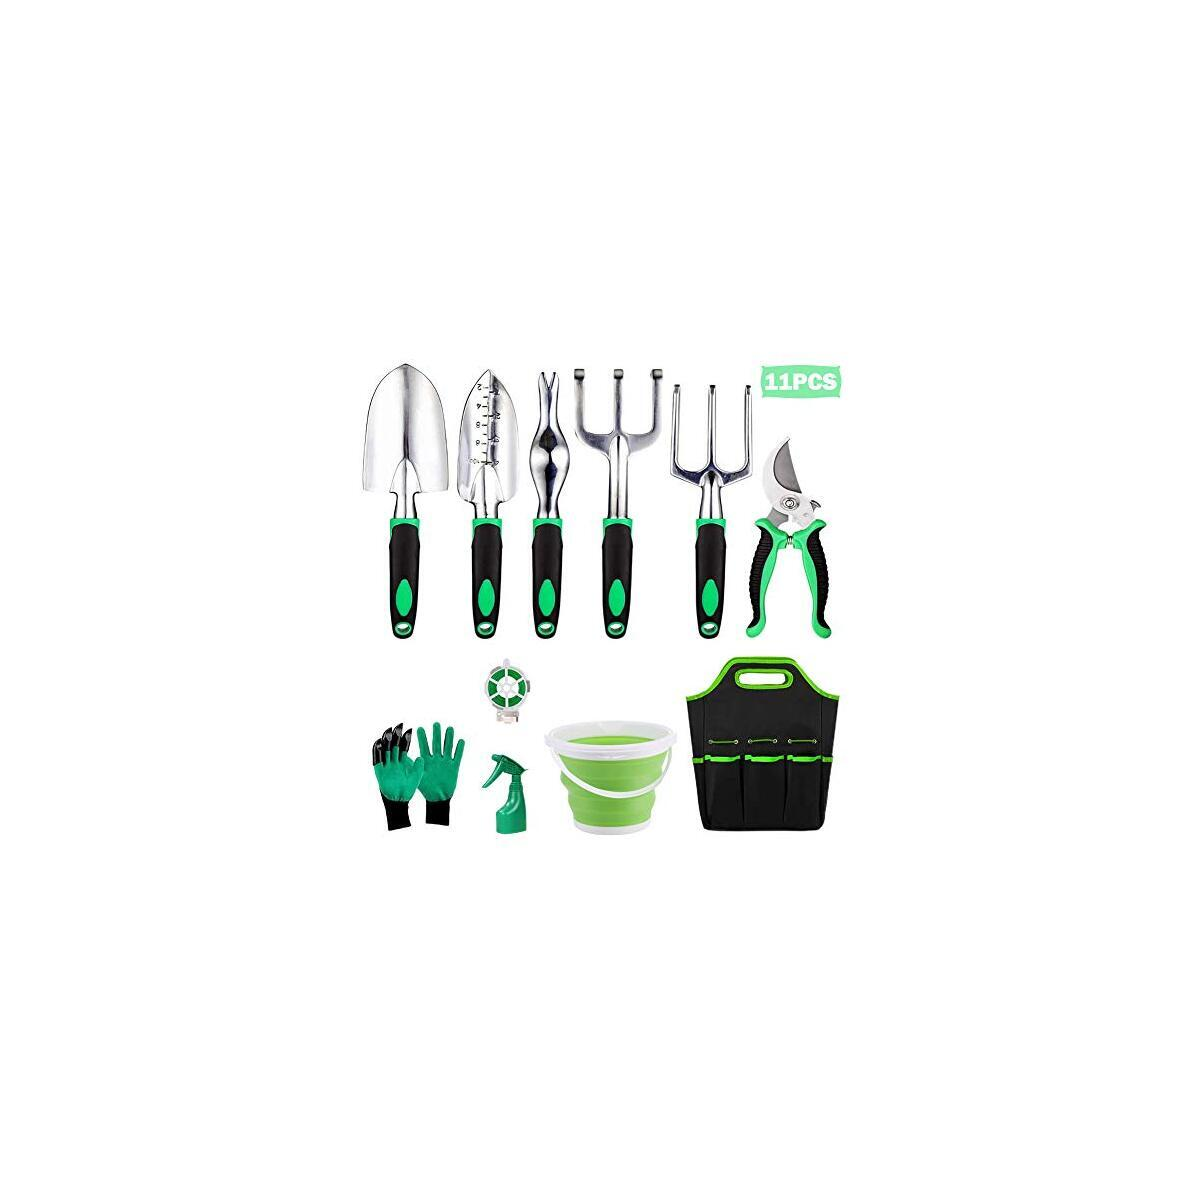 Garden Tool Set, Heavy Duty Gardening Tools Kits 11 Pieces, with Garden Gloves & Garden Handbag and More, Gardening Gifts for Woman